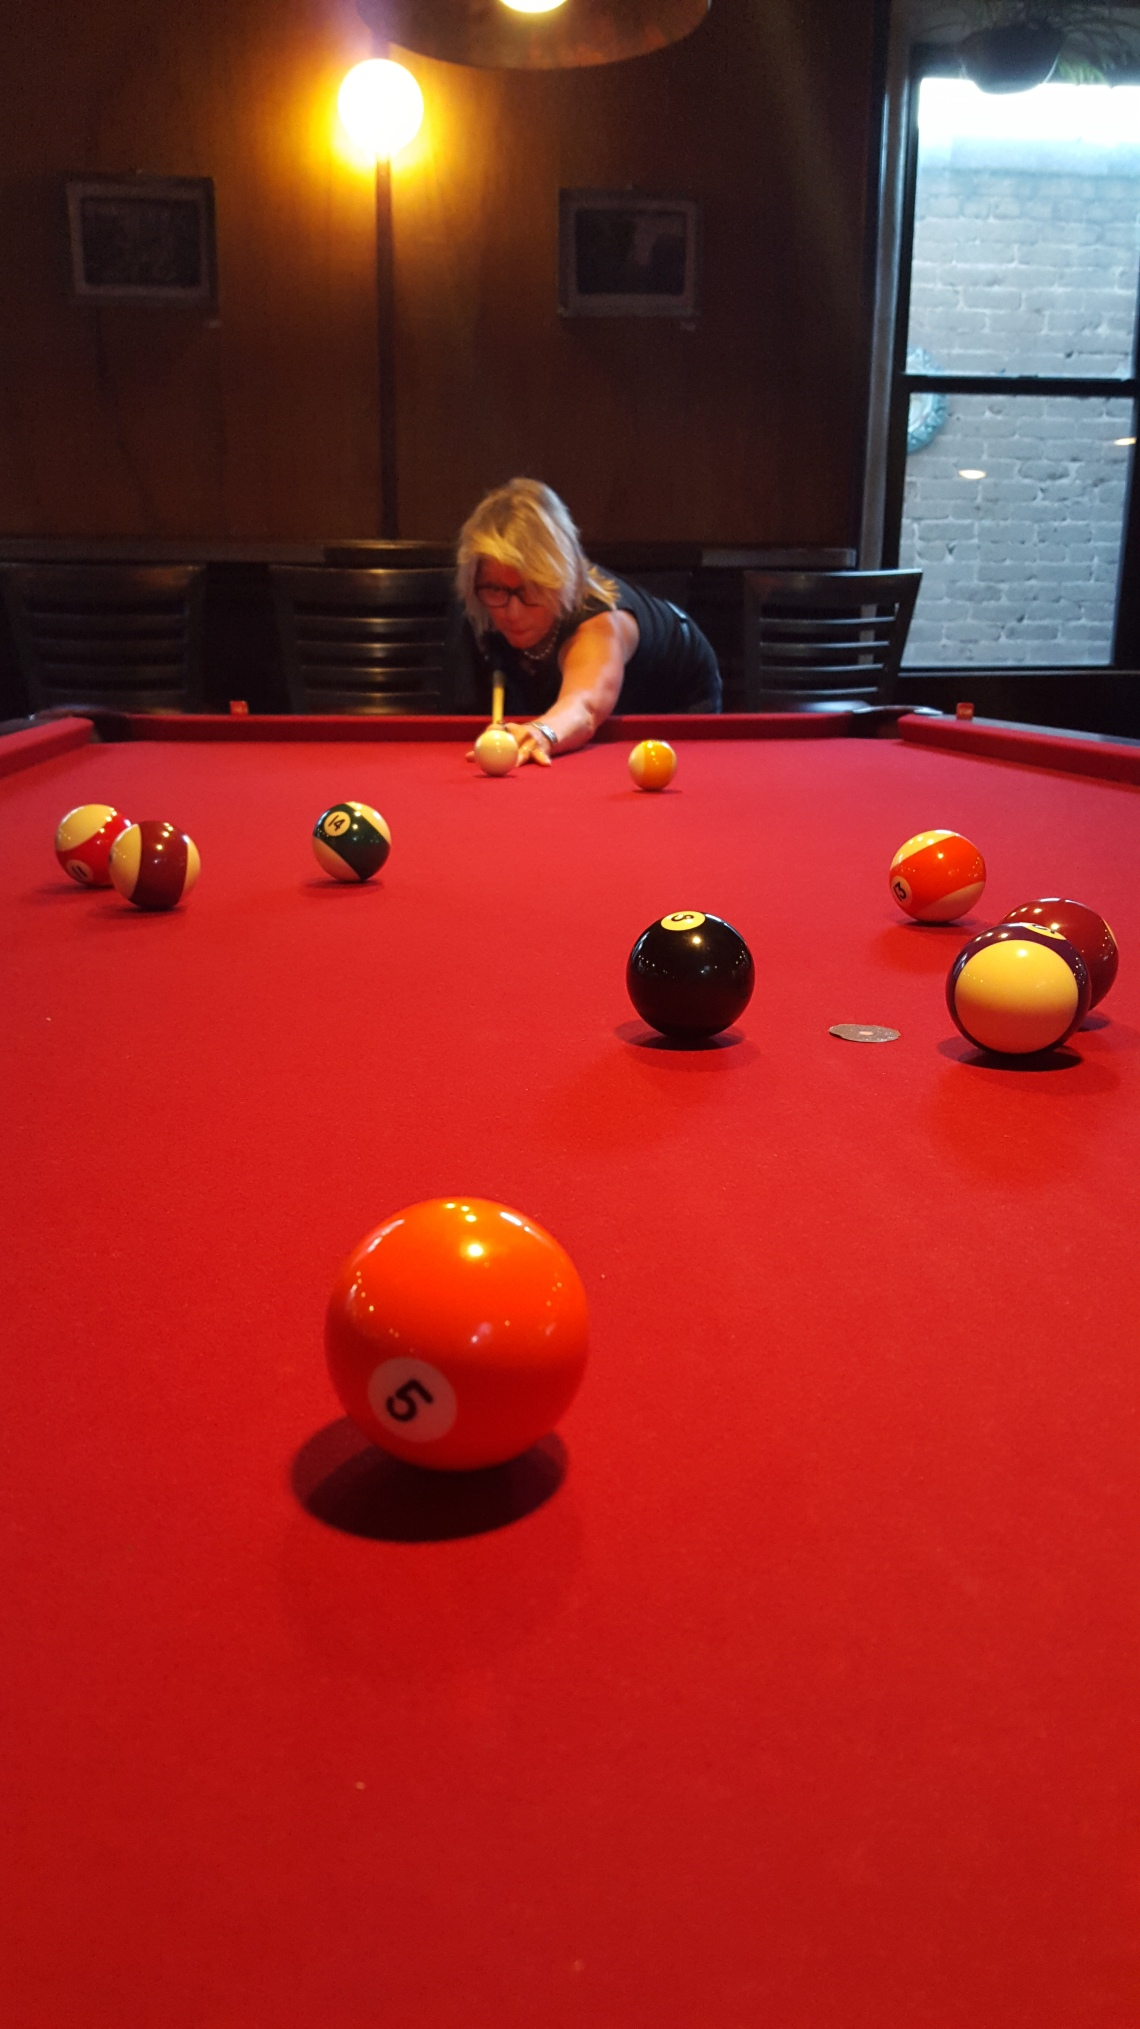 Pool Hall Albuquerque 12.04.162016-04-12 18.47.10